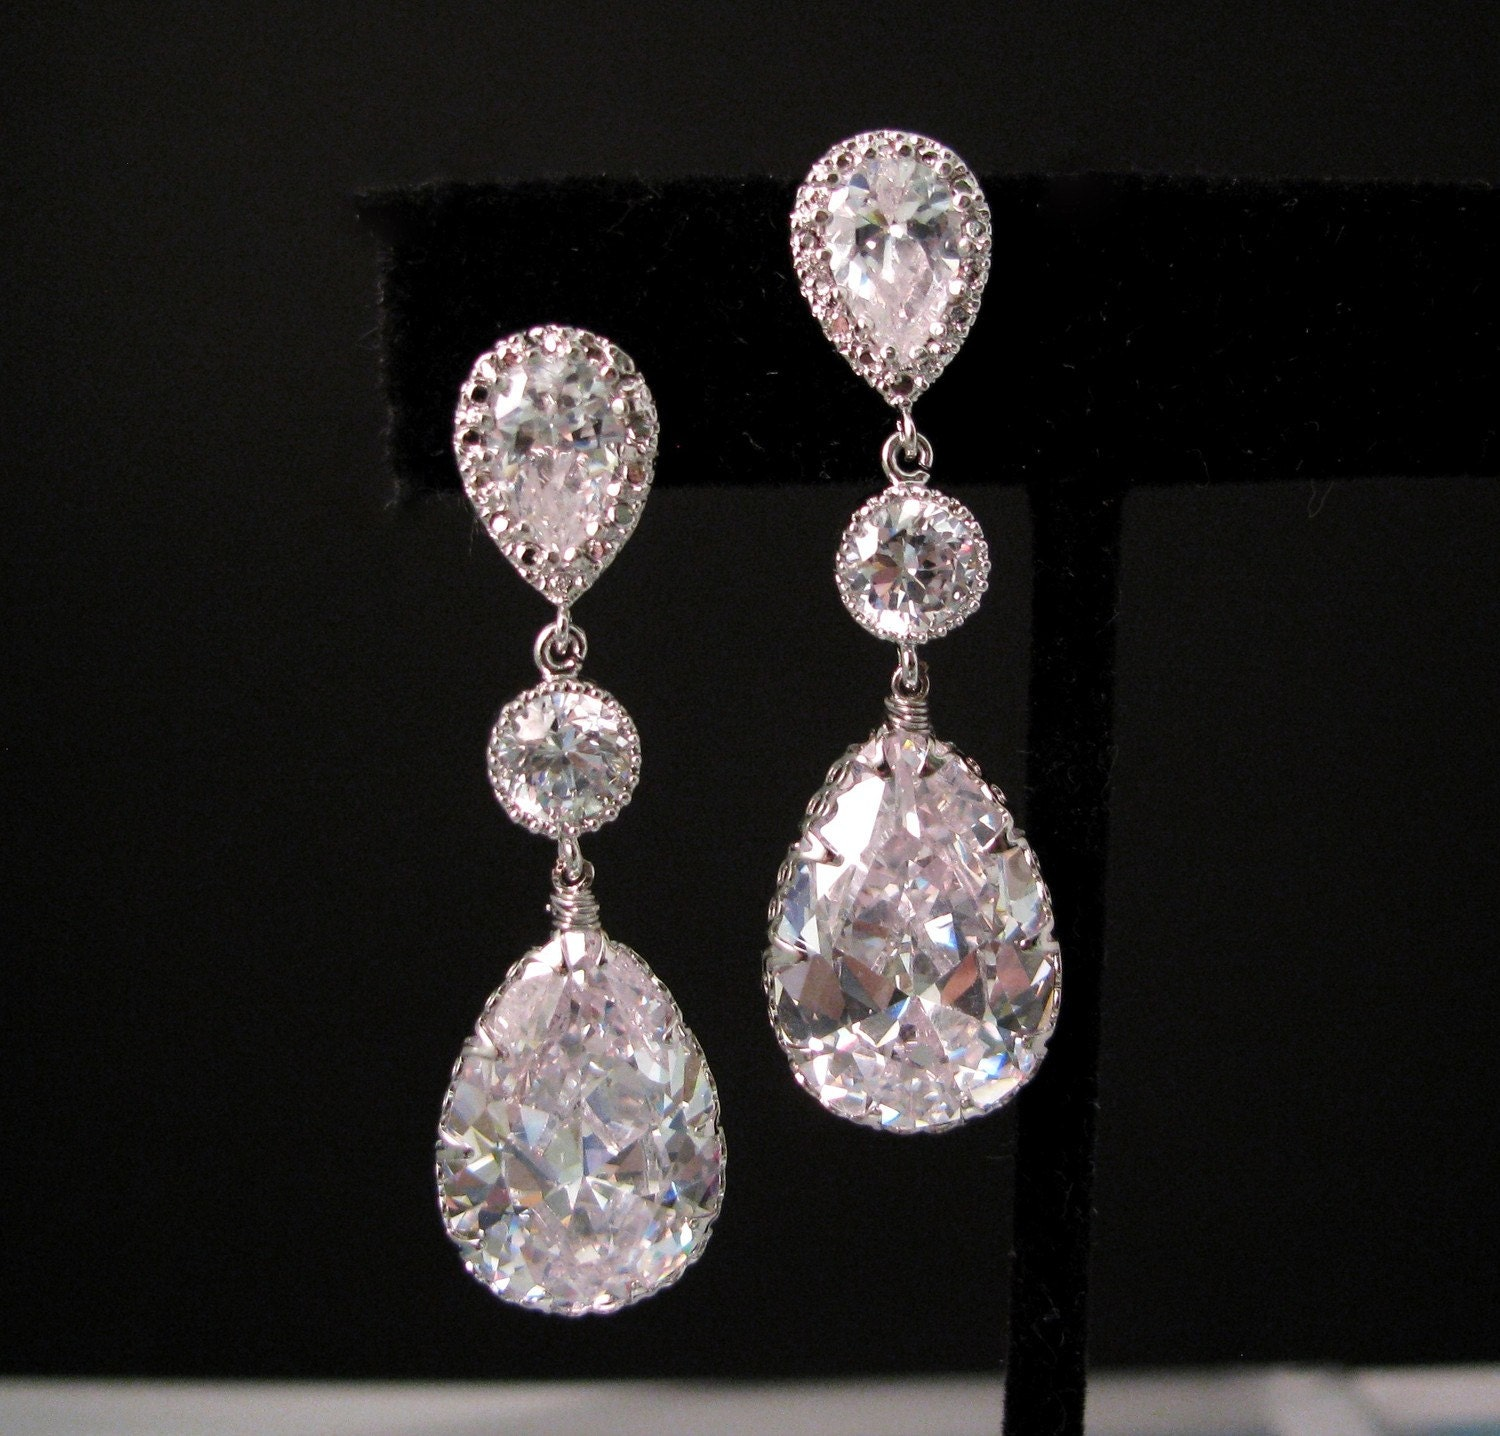 bridal wedding Clear white teardrop AAA cubic zirconia on teardrop cz white gold post earrings with circular cz connectors